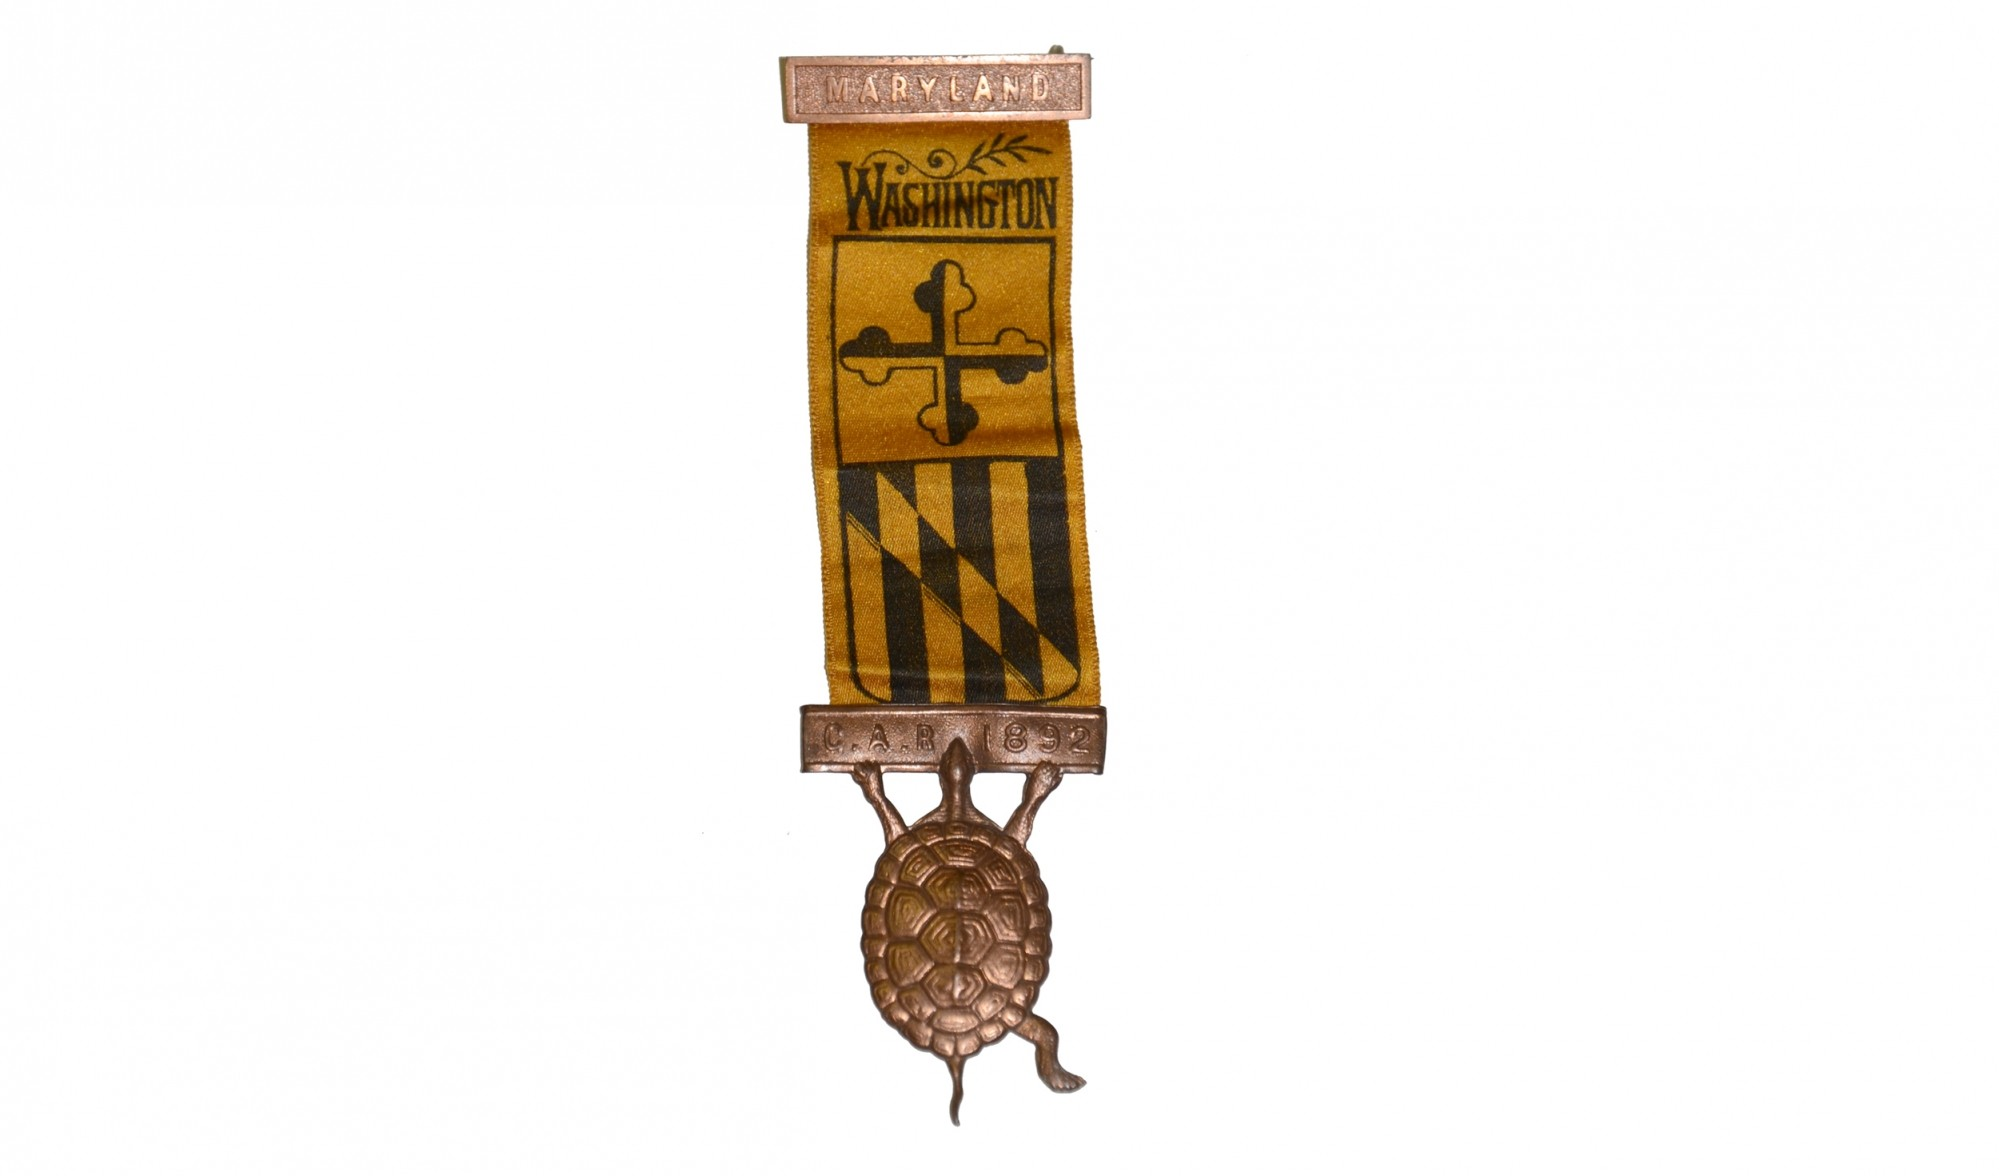 MARYLAND 1892 GAR BADGE